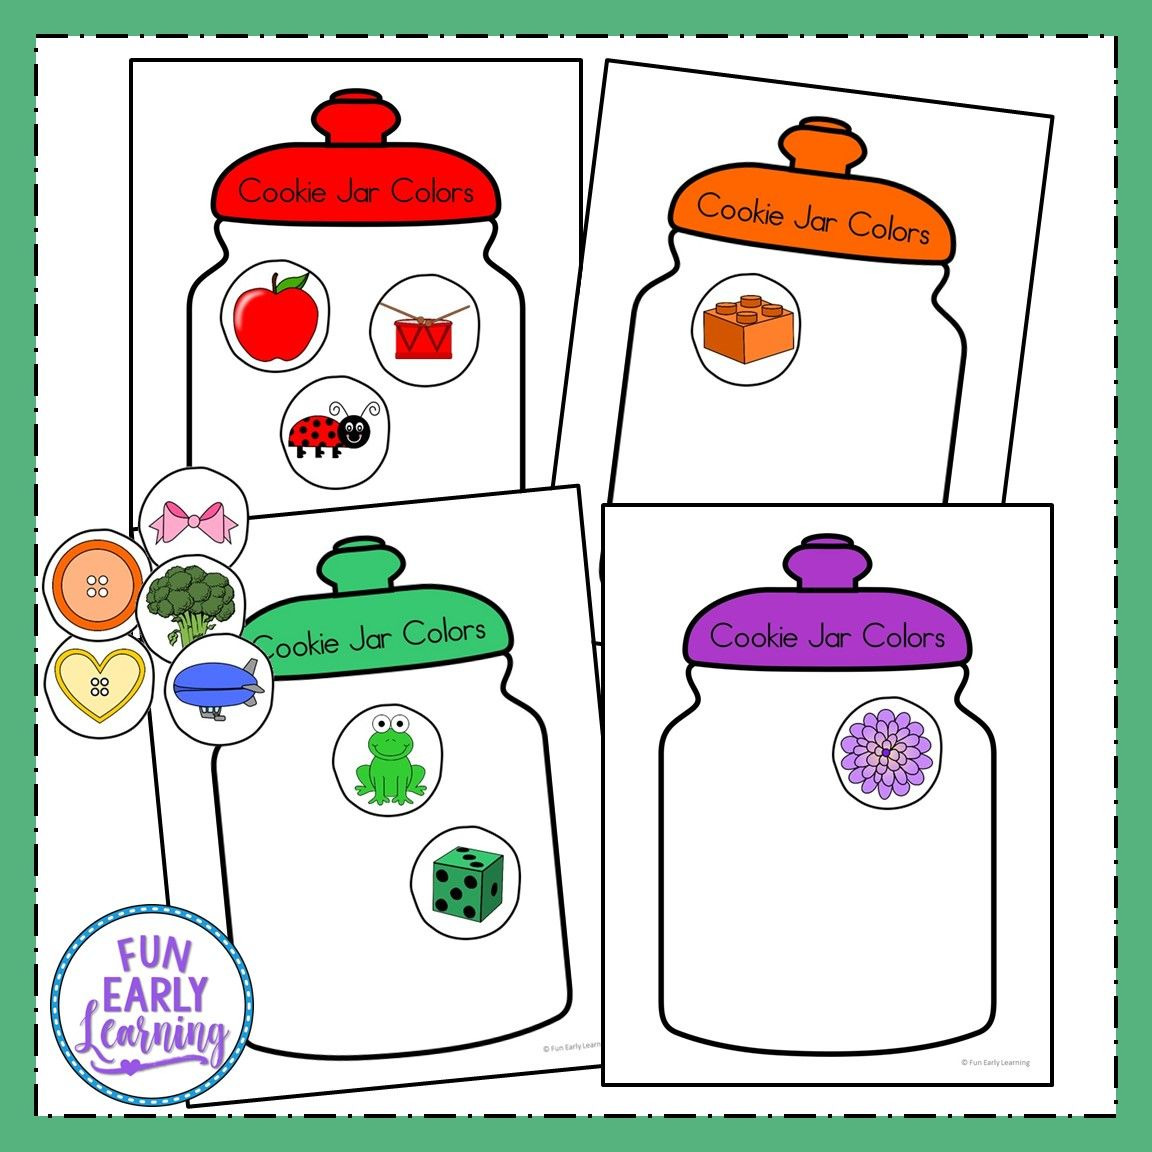 Cookie Jar Colors Activity